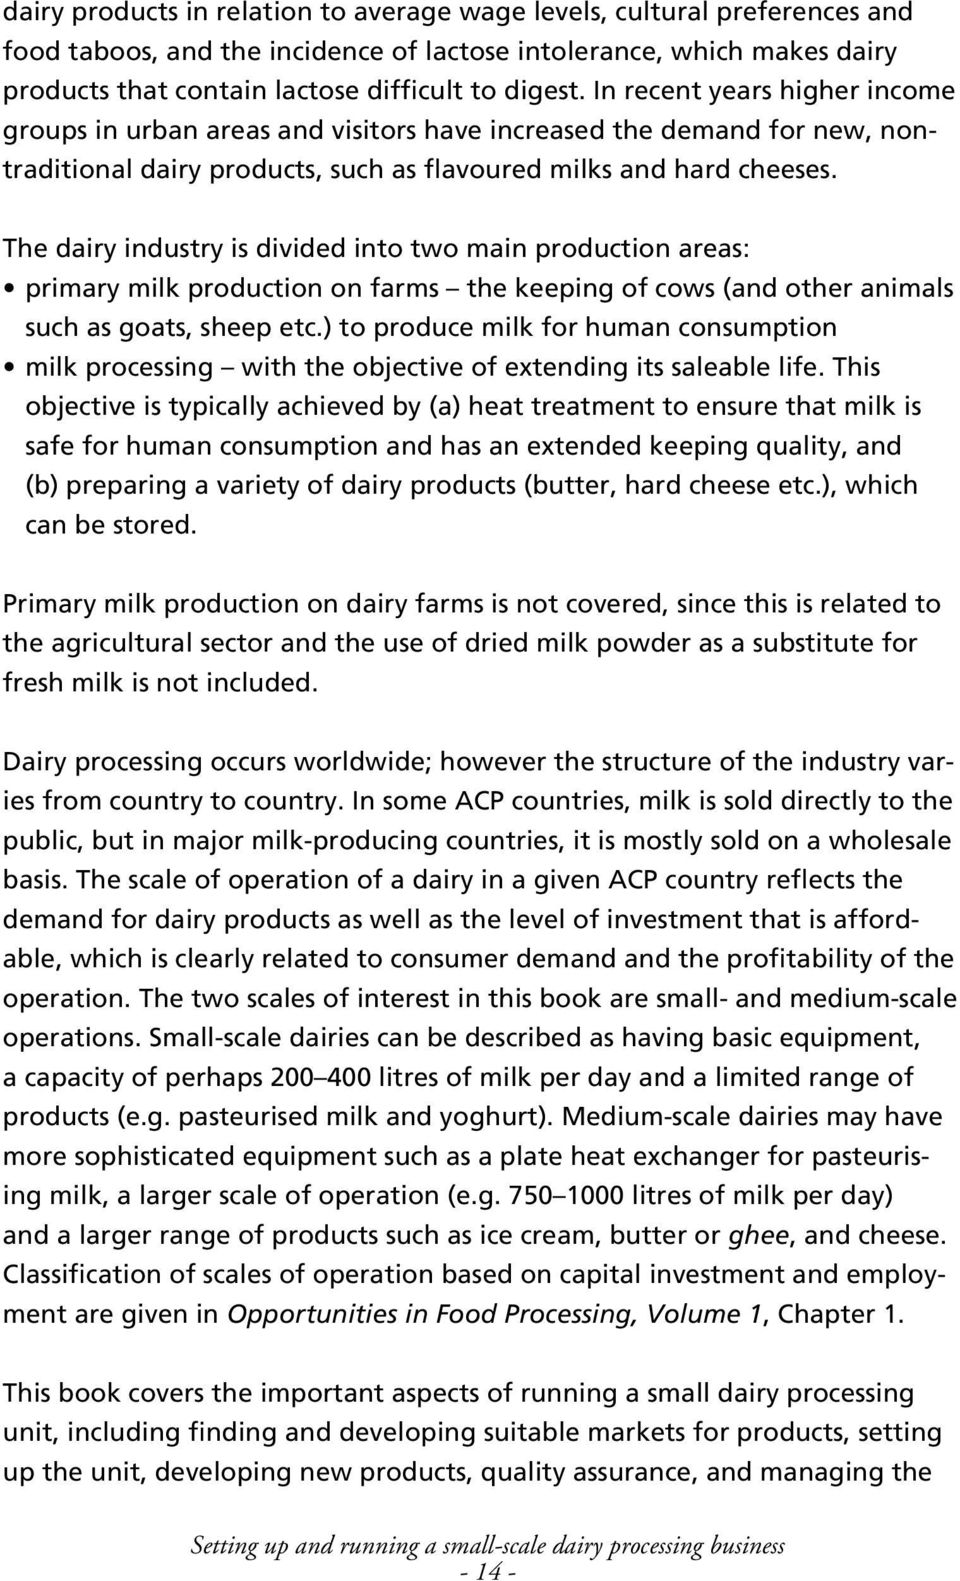 The dairy industry is divided into two main production areas: primary milk production on farms the keeping of cows (and other animals such as goats, sheep etc.